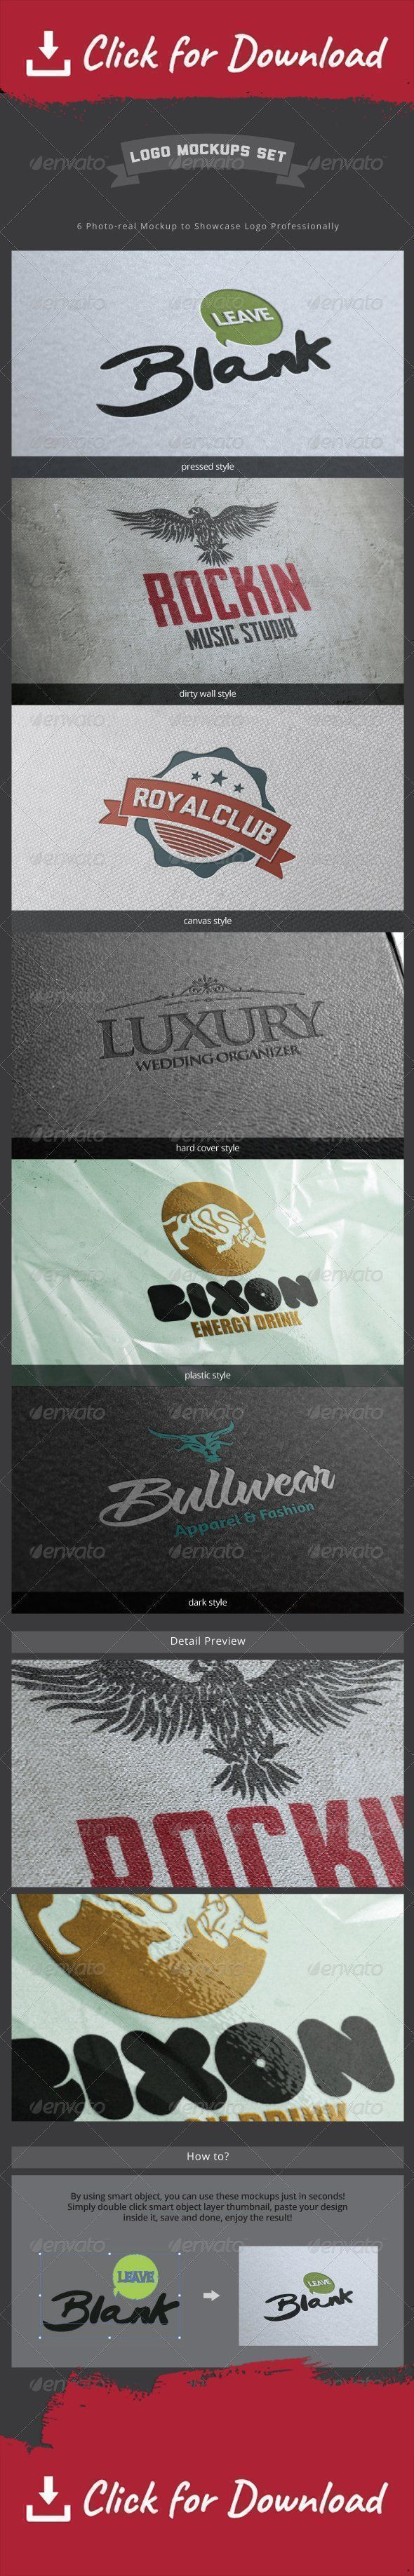 appearance background brand branding canvas cotton depth of